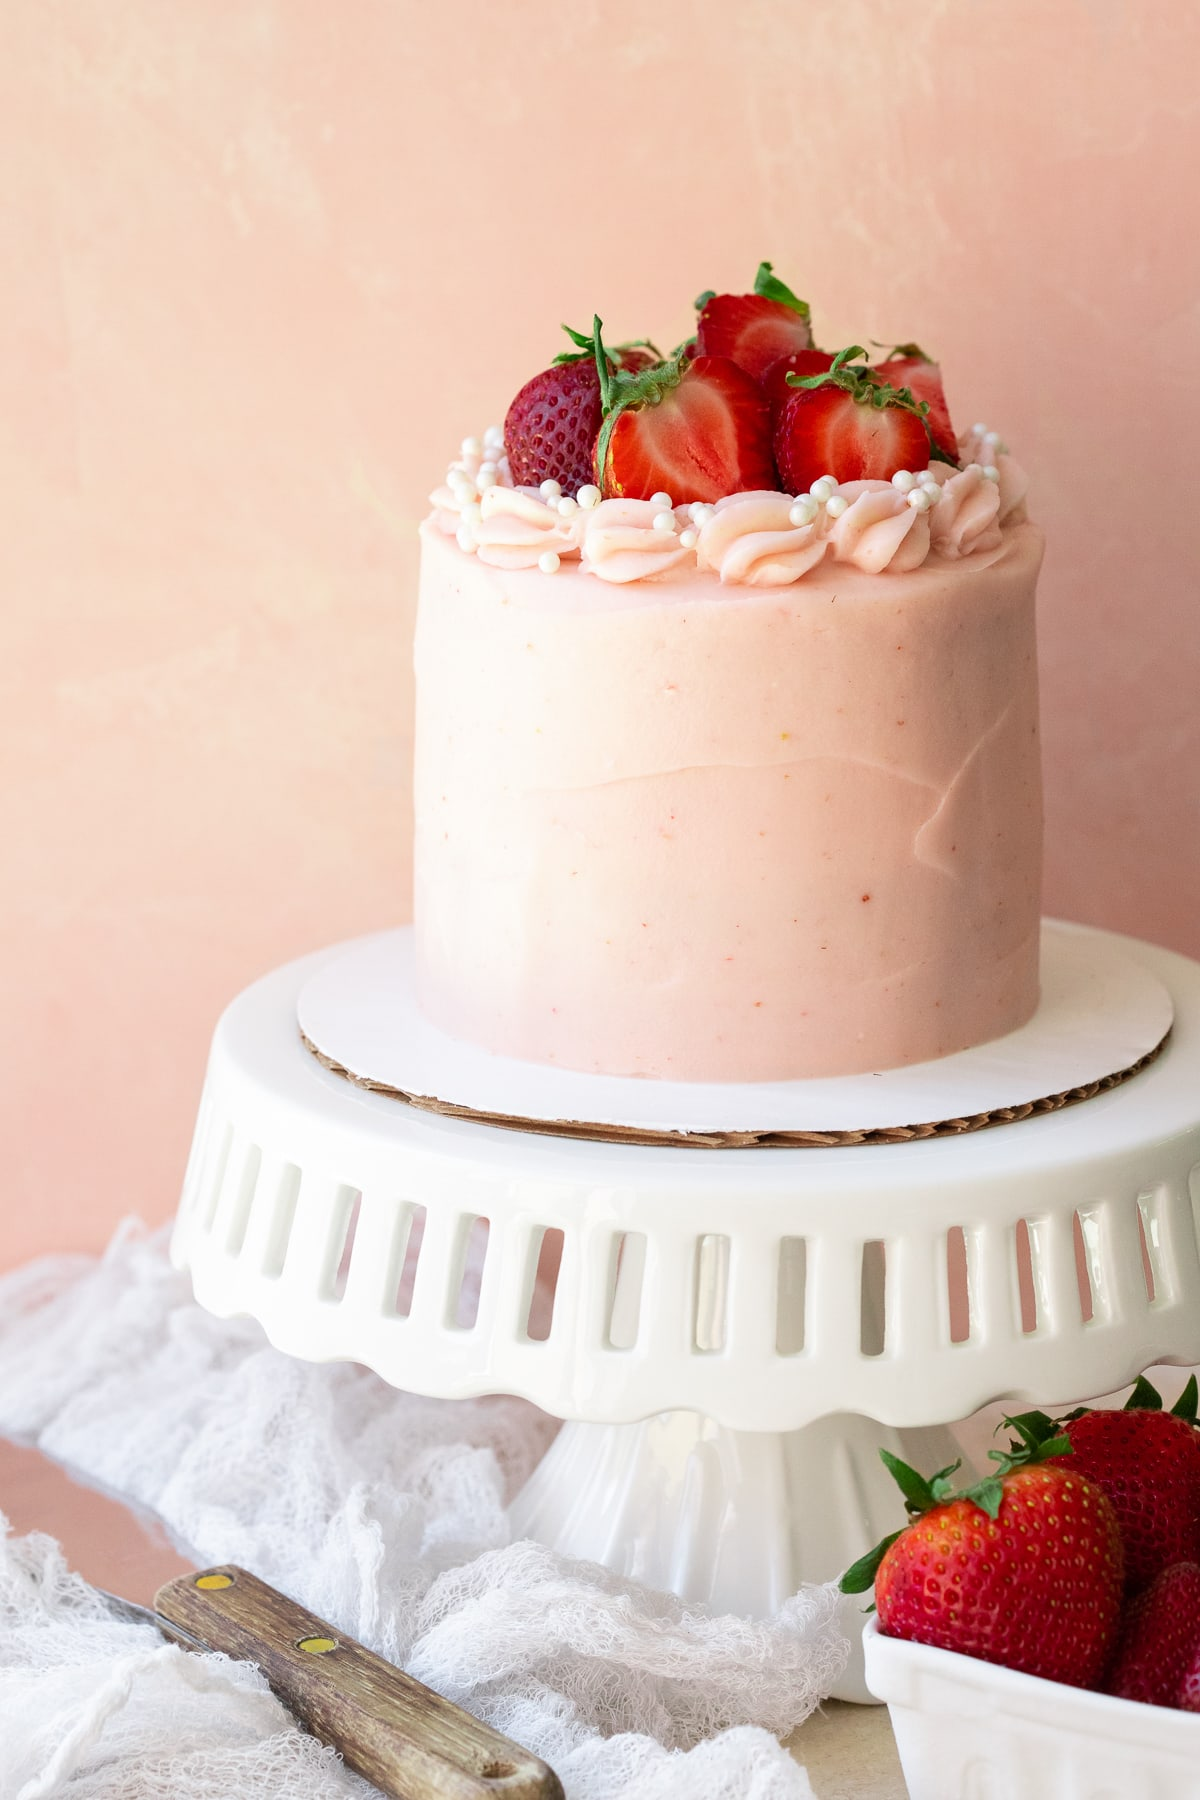 Front-facing view of cake on a white stand, with an icing spatula and extra strawberries to the side.